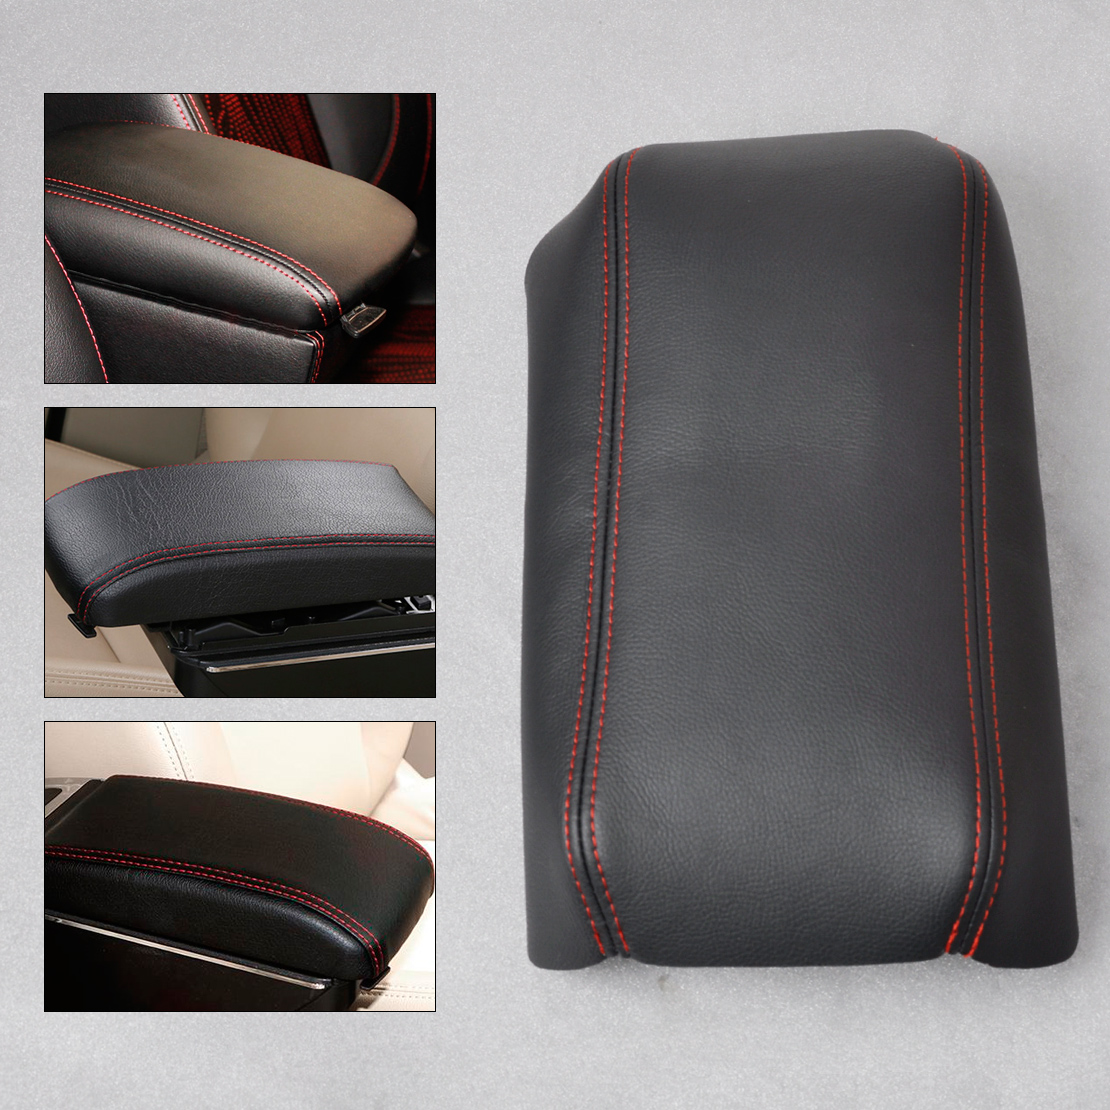 CITALL Black Leather W/Red Stitching DIY Front Console Lid Armrest Cover Decoration for Honda Accord 2003 2004 2005 2006 2007